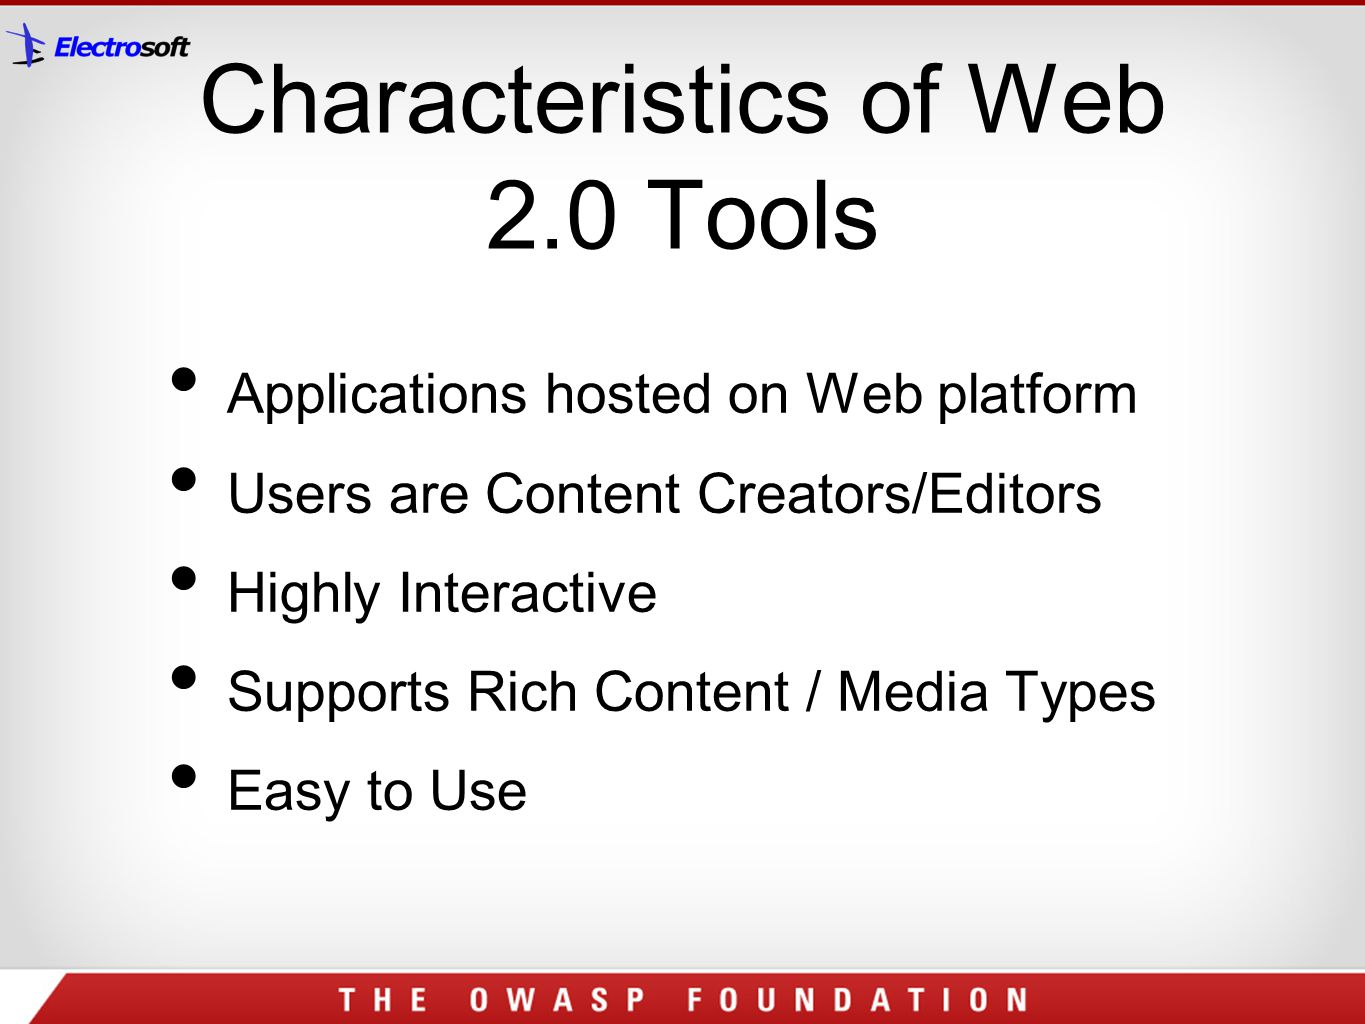 Characteristics of Web 2.0 Tools